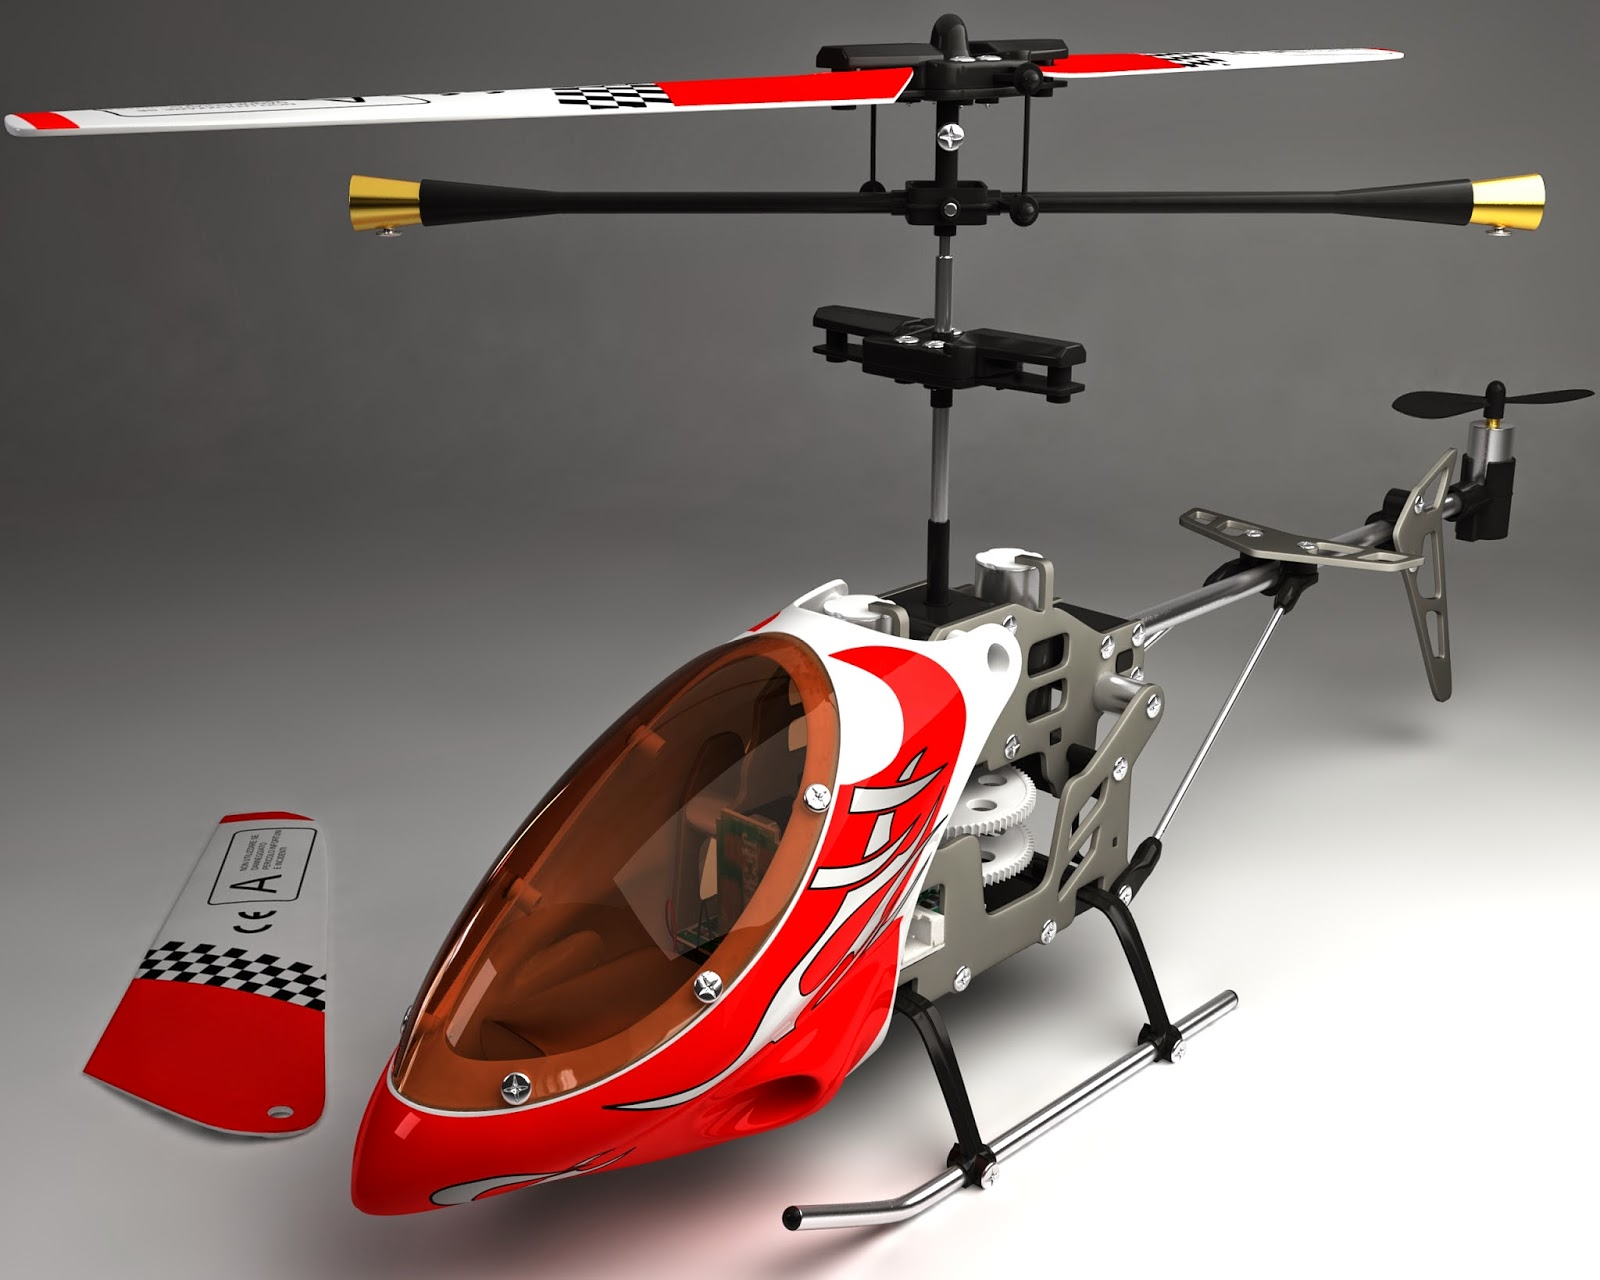 Elicottero 3d Model : Helicopter free d models download free d